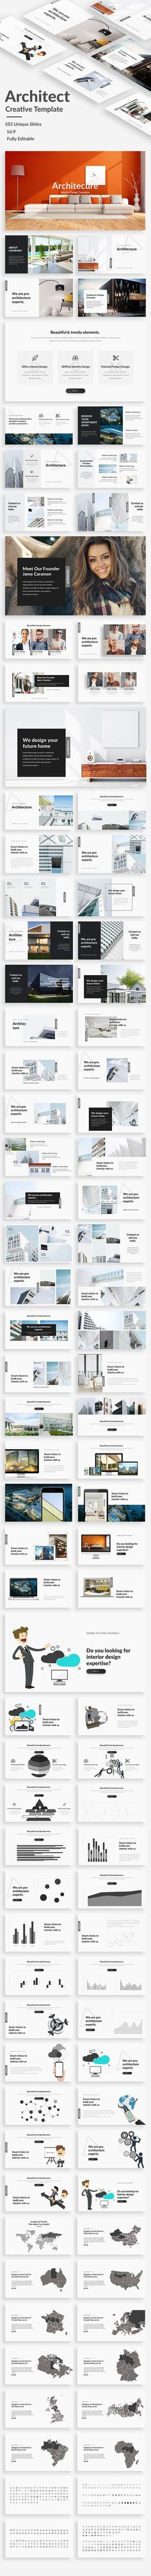 Architecture and Interior Design Powerpoint Template